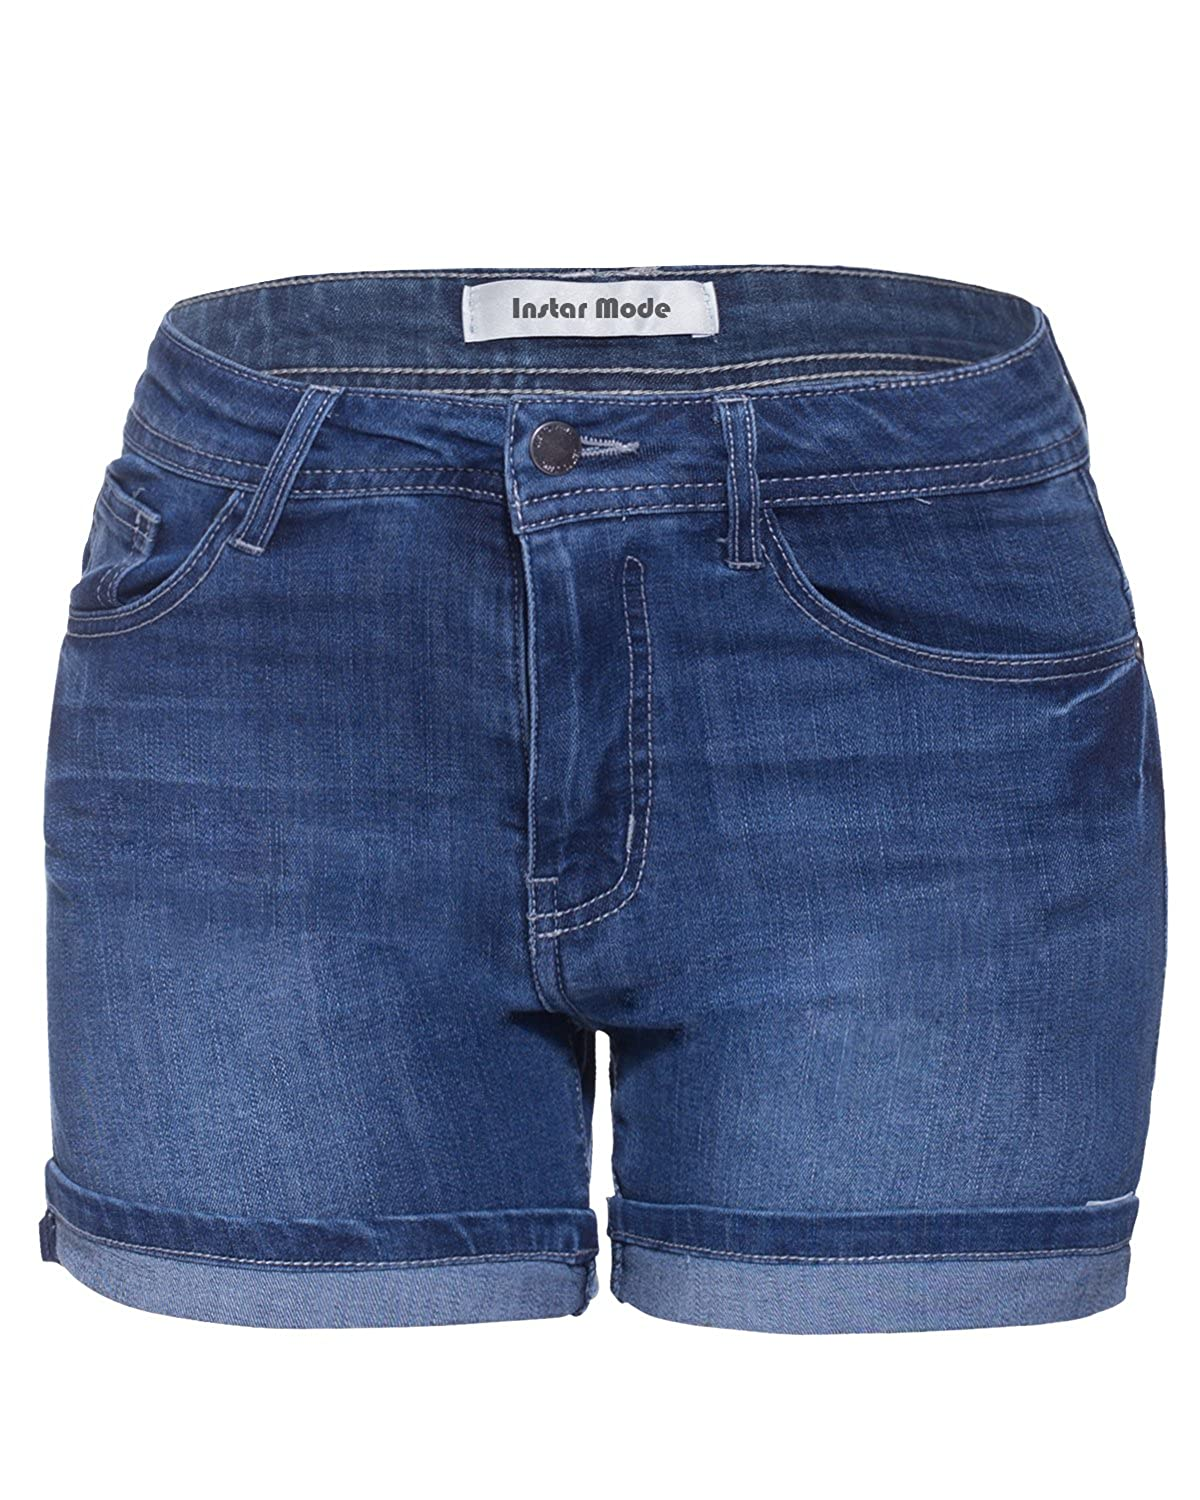 Js01411 Dark Denim Instar Mode Womens Mid Waist Casual Denim Shorts